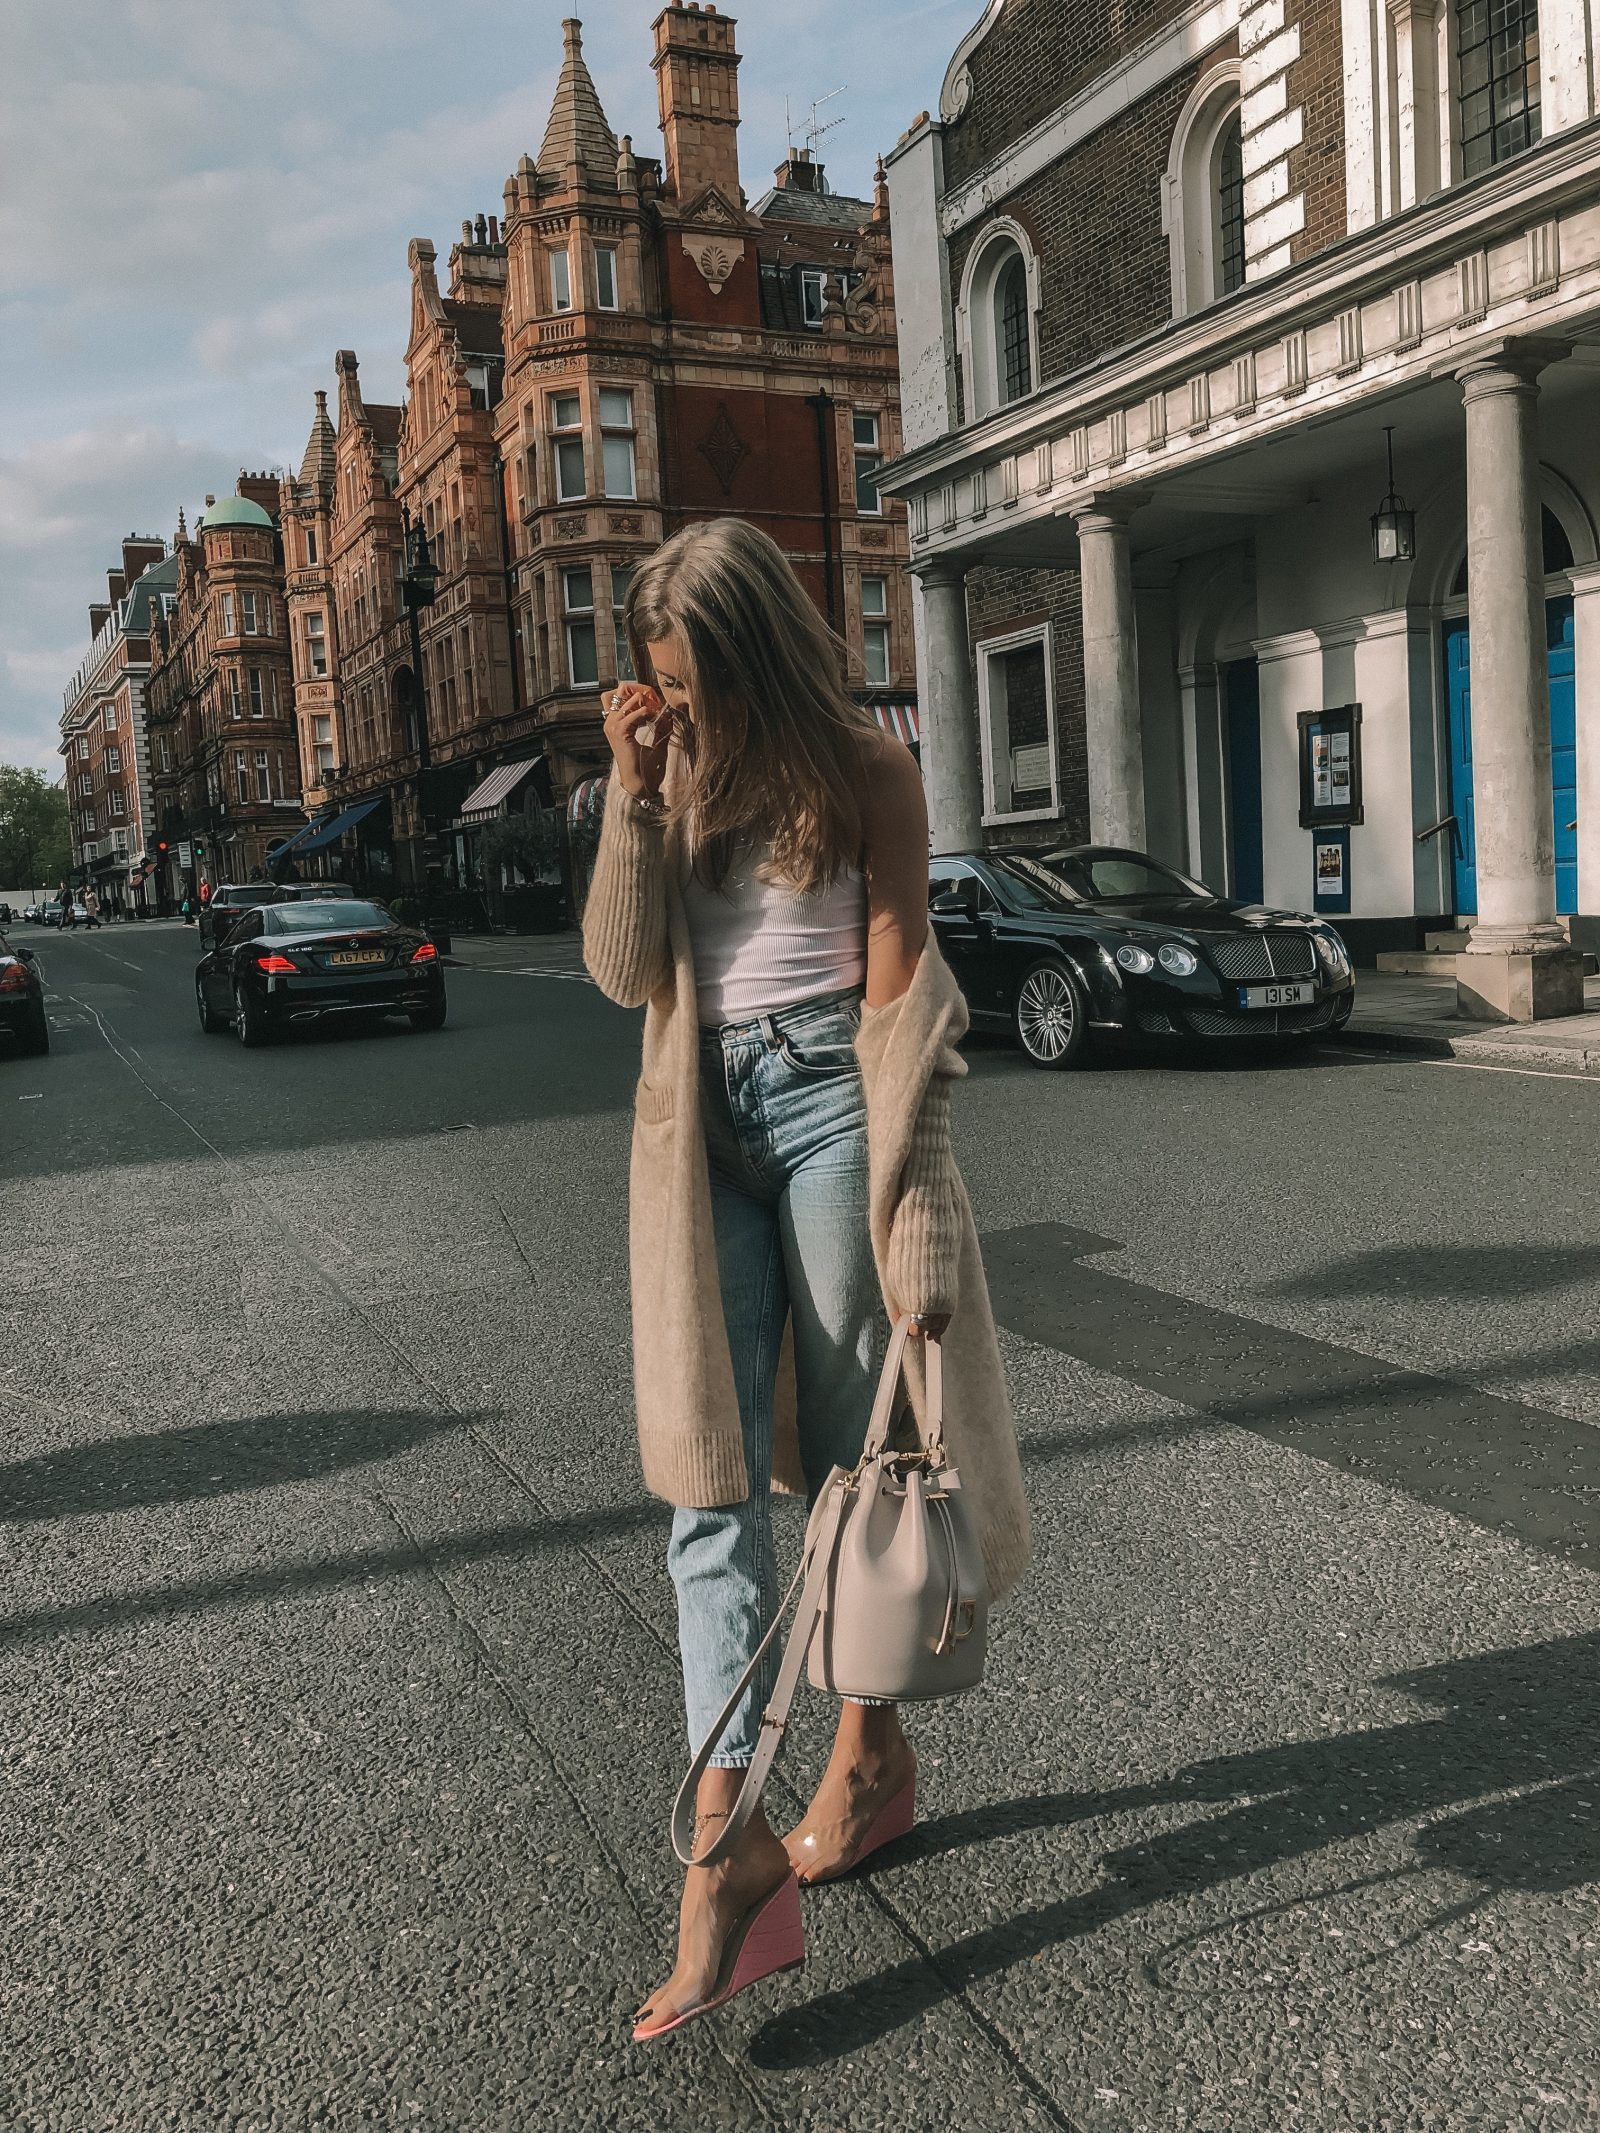 Spring Outfit Idea - VIntage Wash Topshop Mom Jeans in Mayfair, London